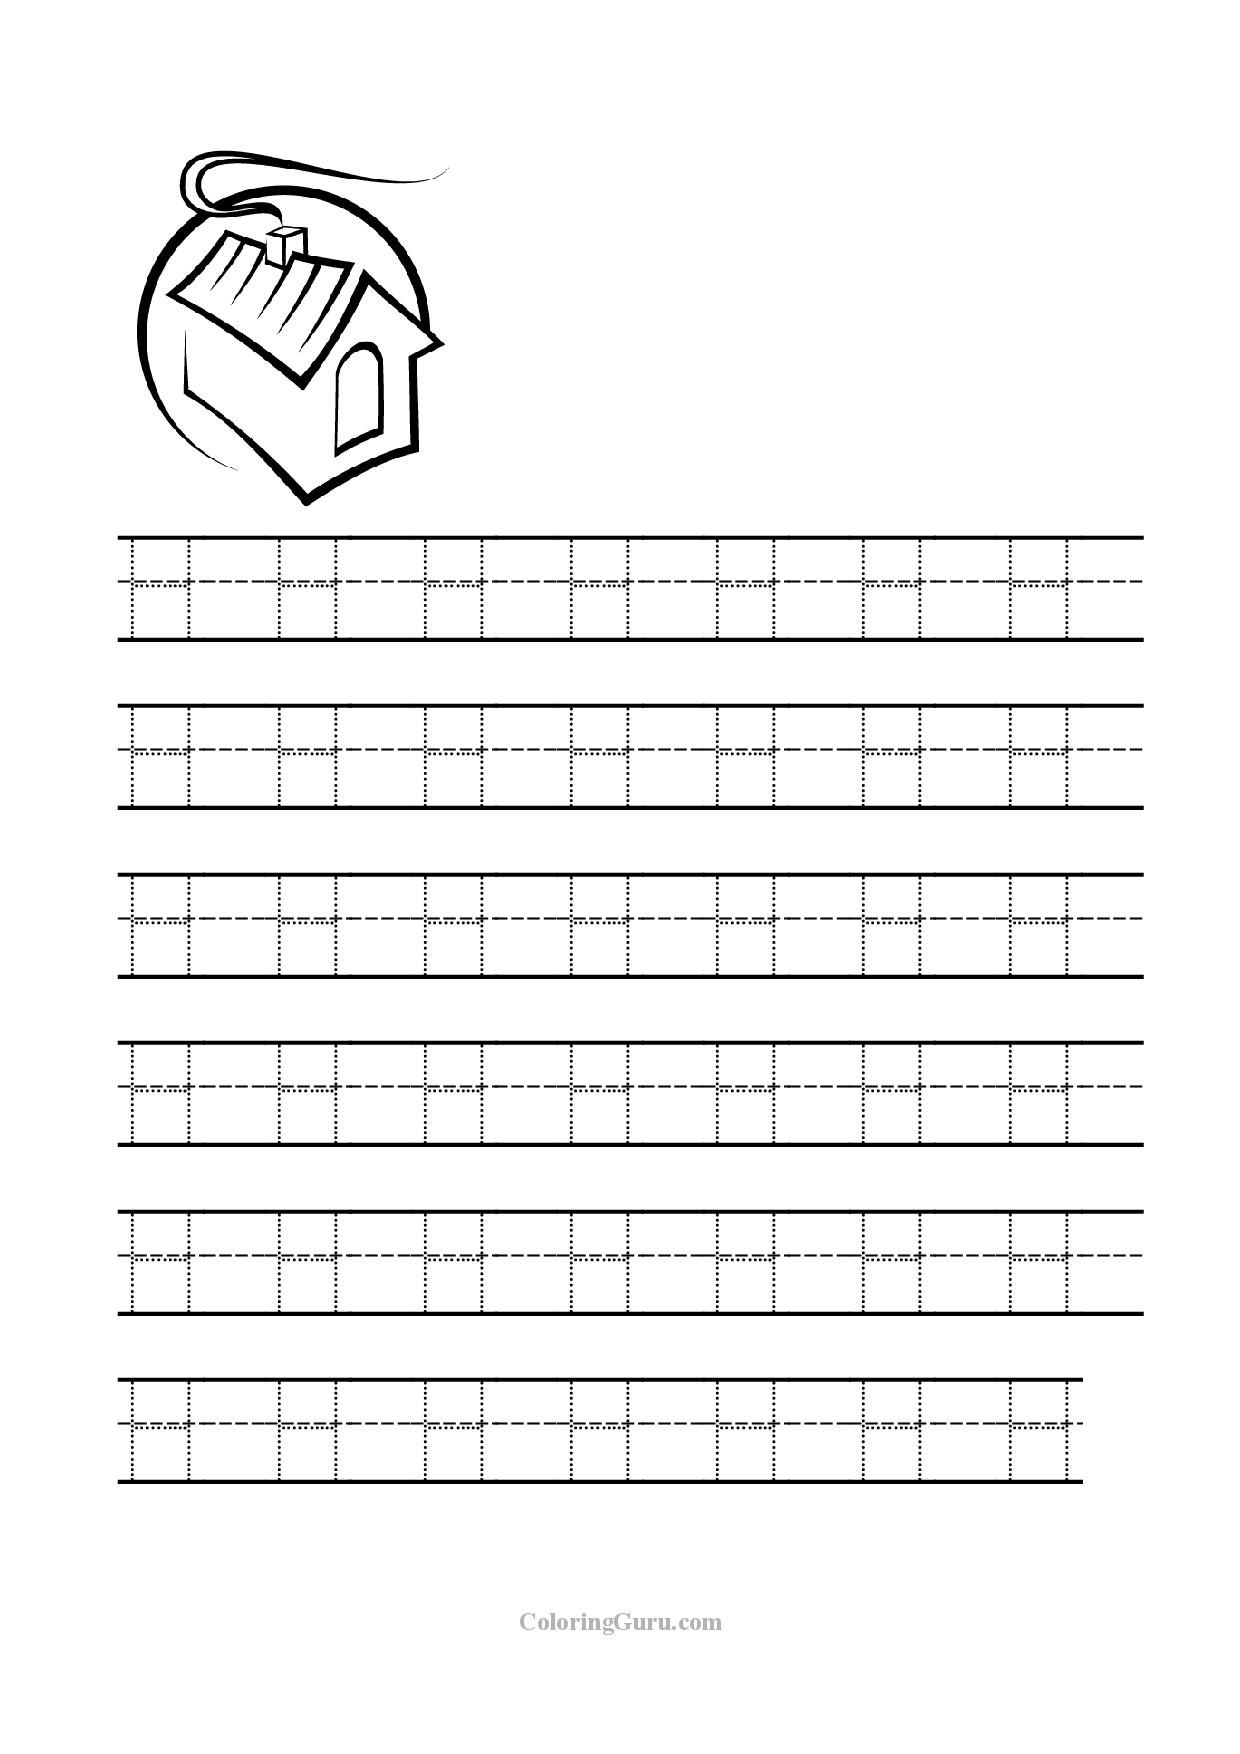 Free Printable Tracing Letter H Worksheets For Preschool for Letter H Tracing Preschool